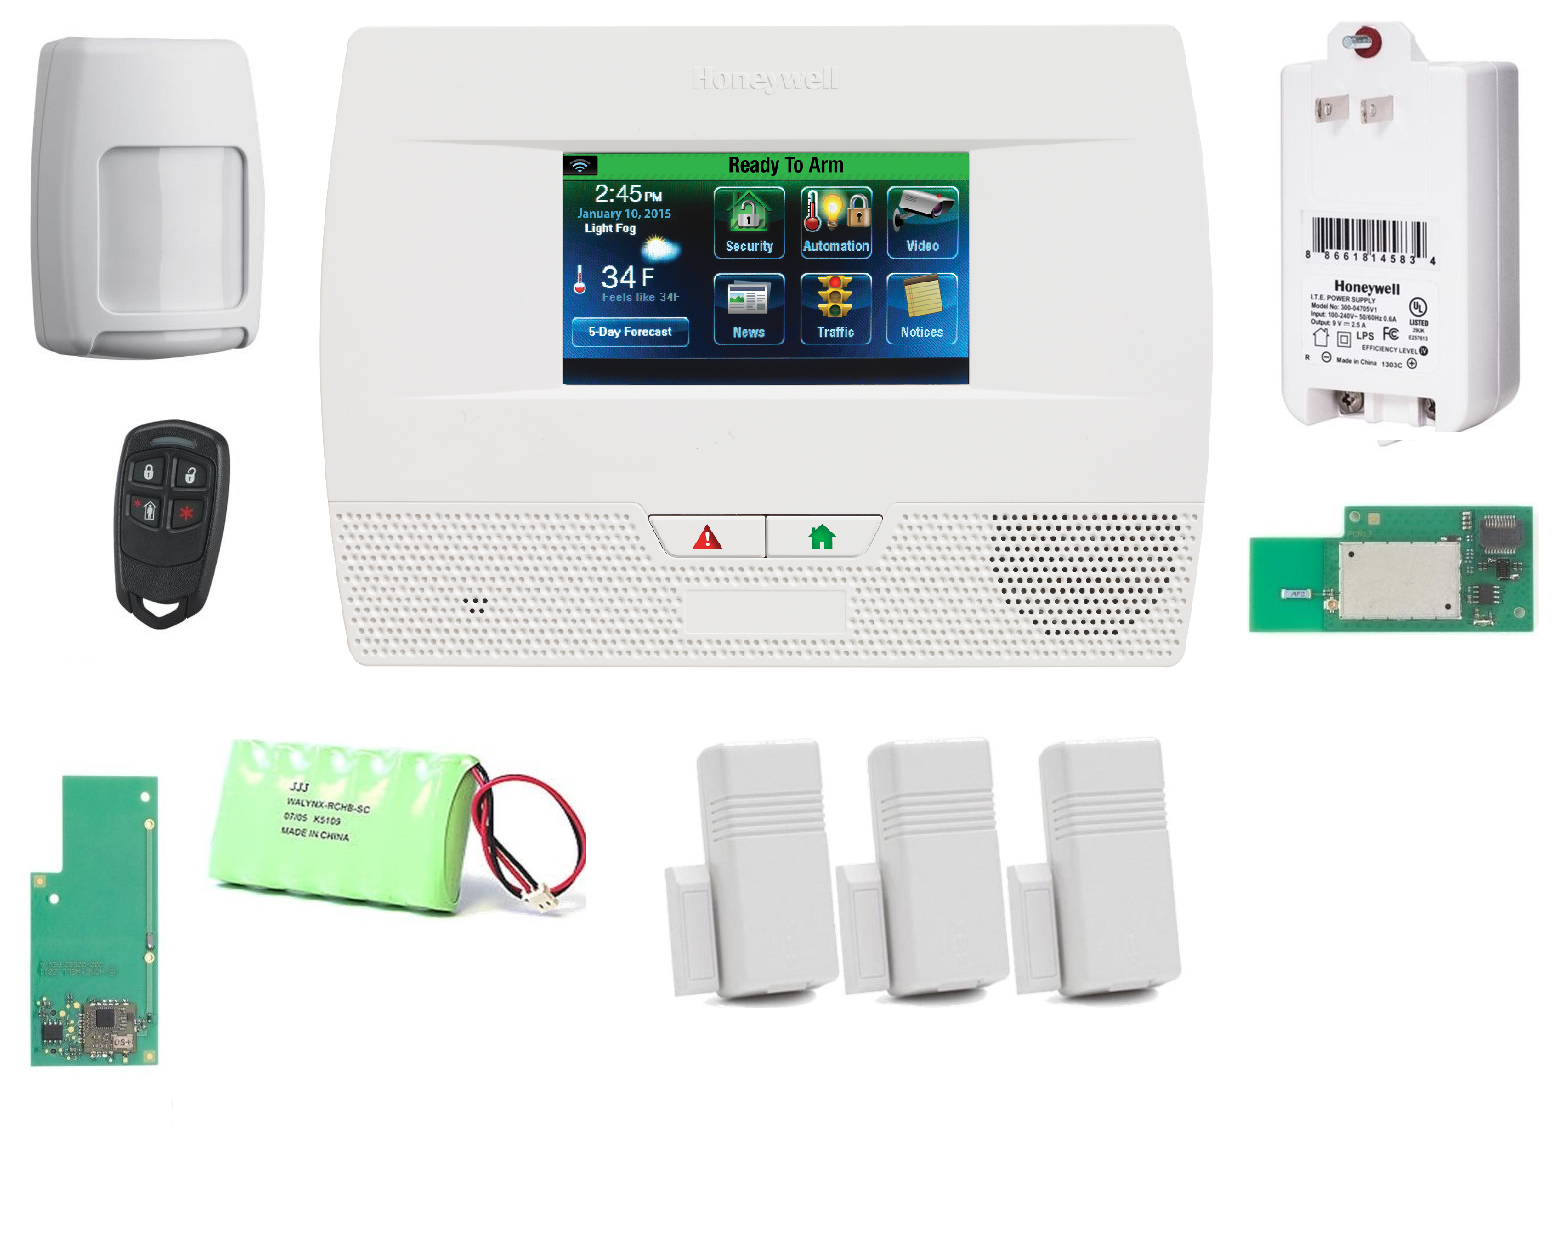 L521WF-KT1-Zwave-Honeywell Lynx Touch L5210 WiFi Security Alarm System with Zwave